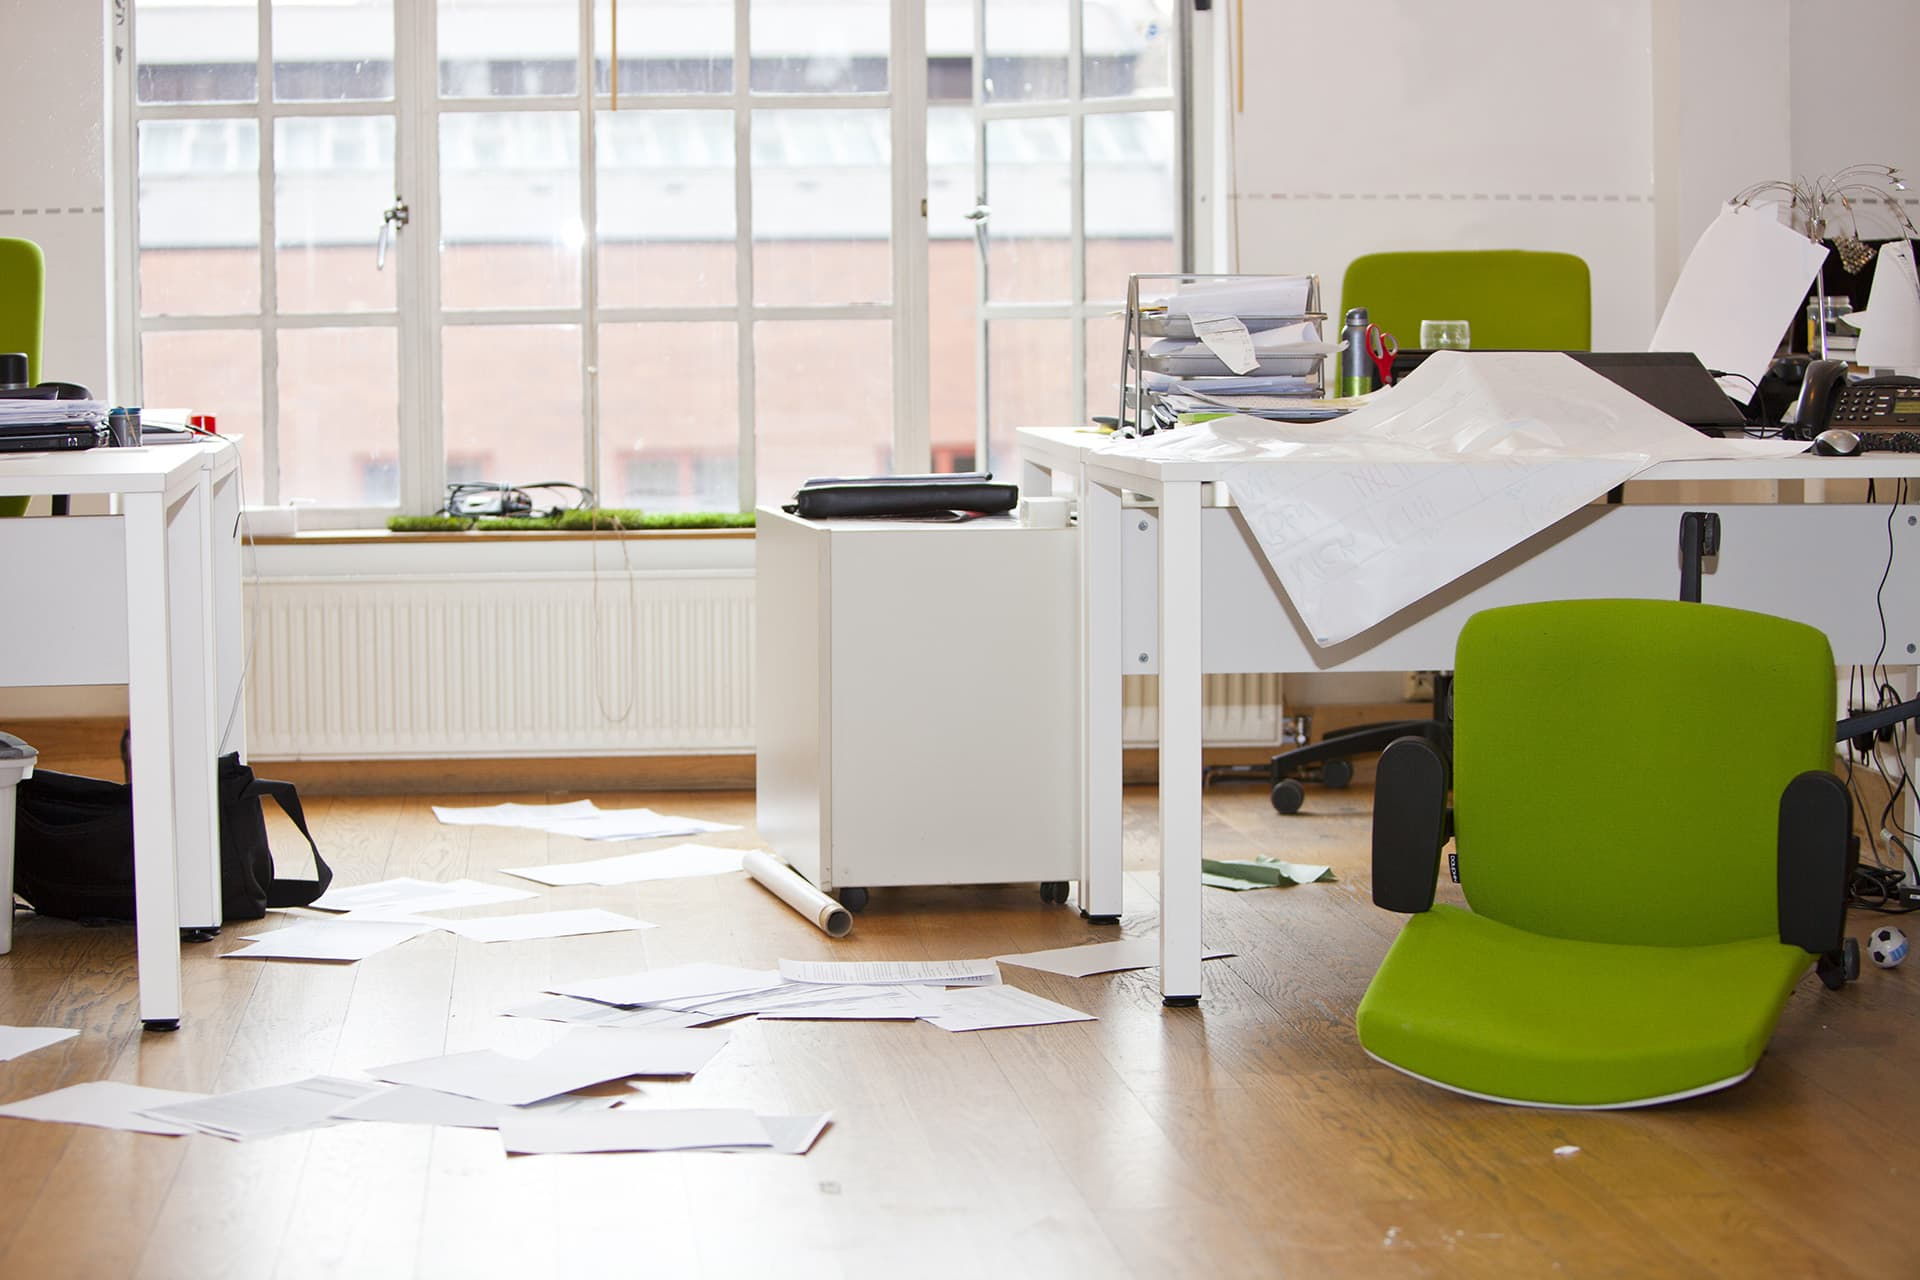 Messy office after a break and enter with commercial property insurance